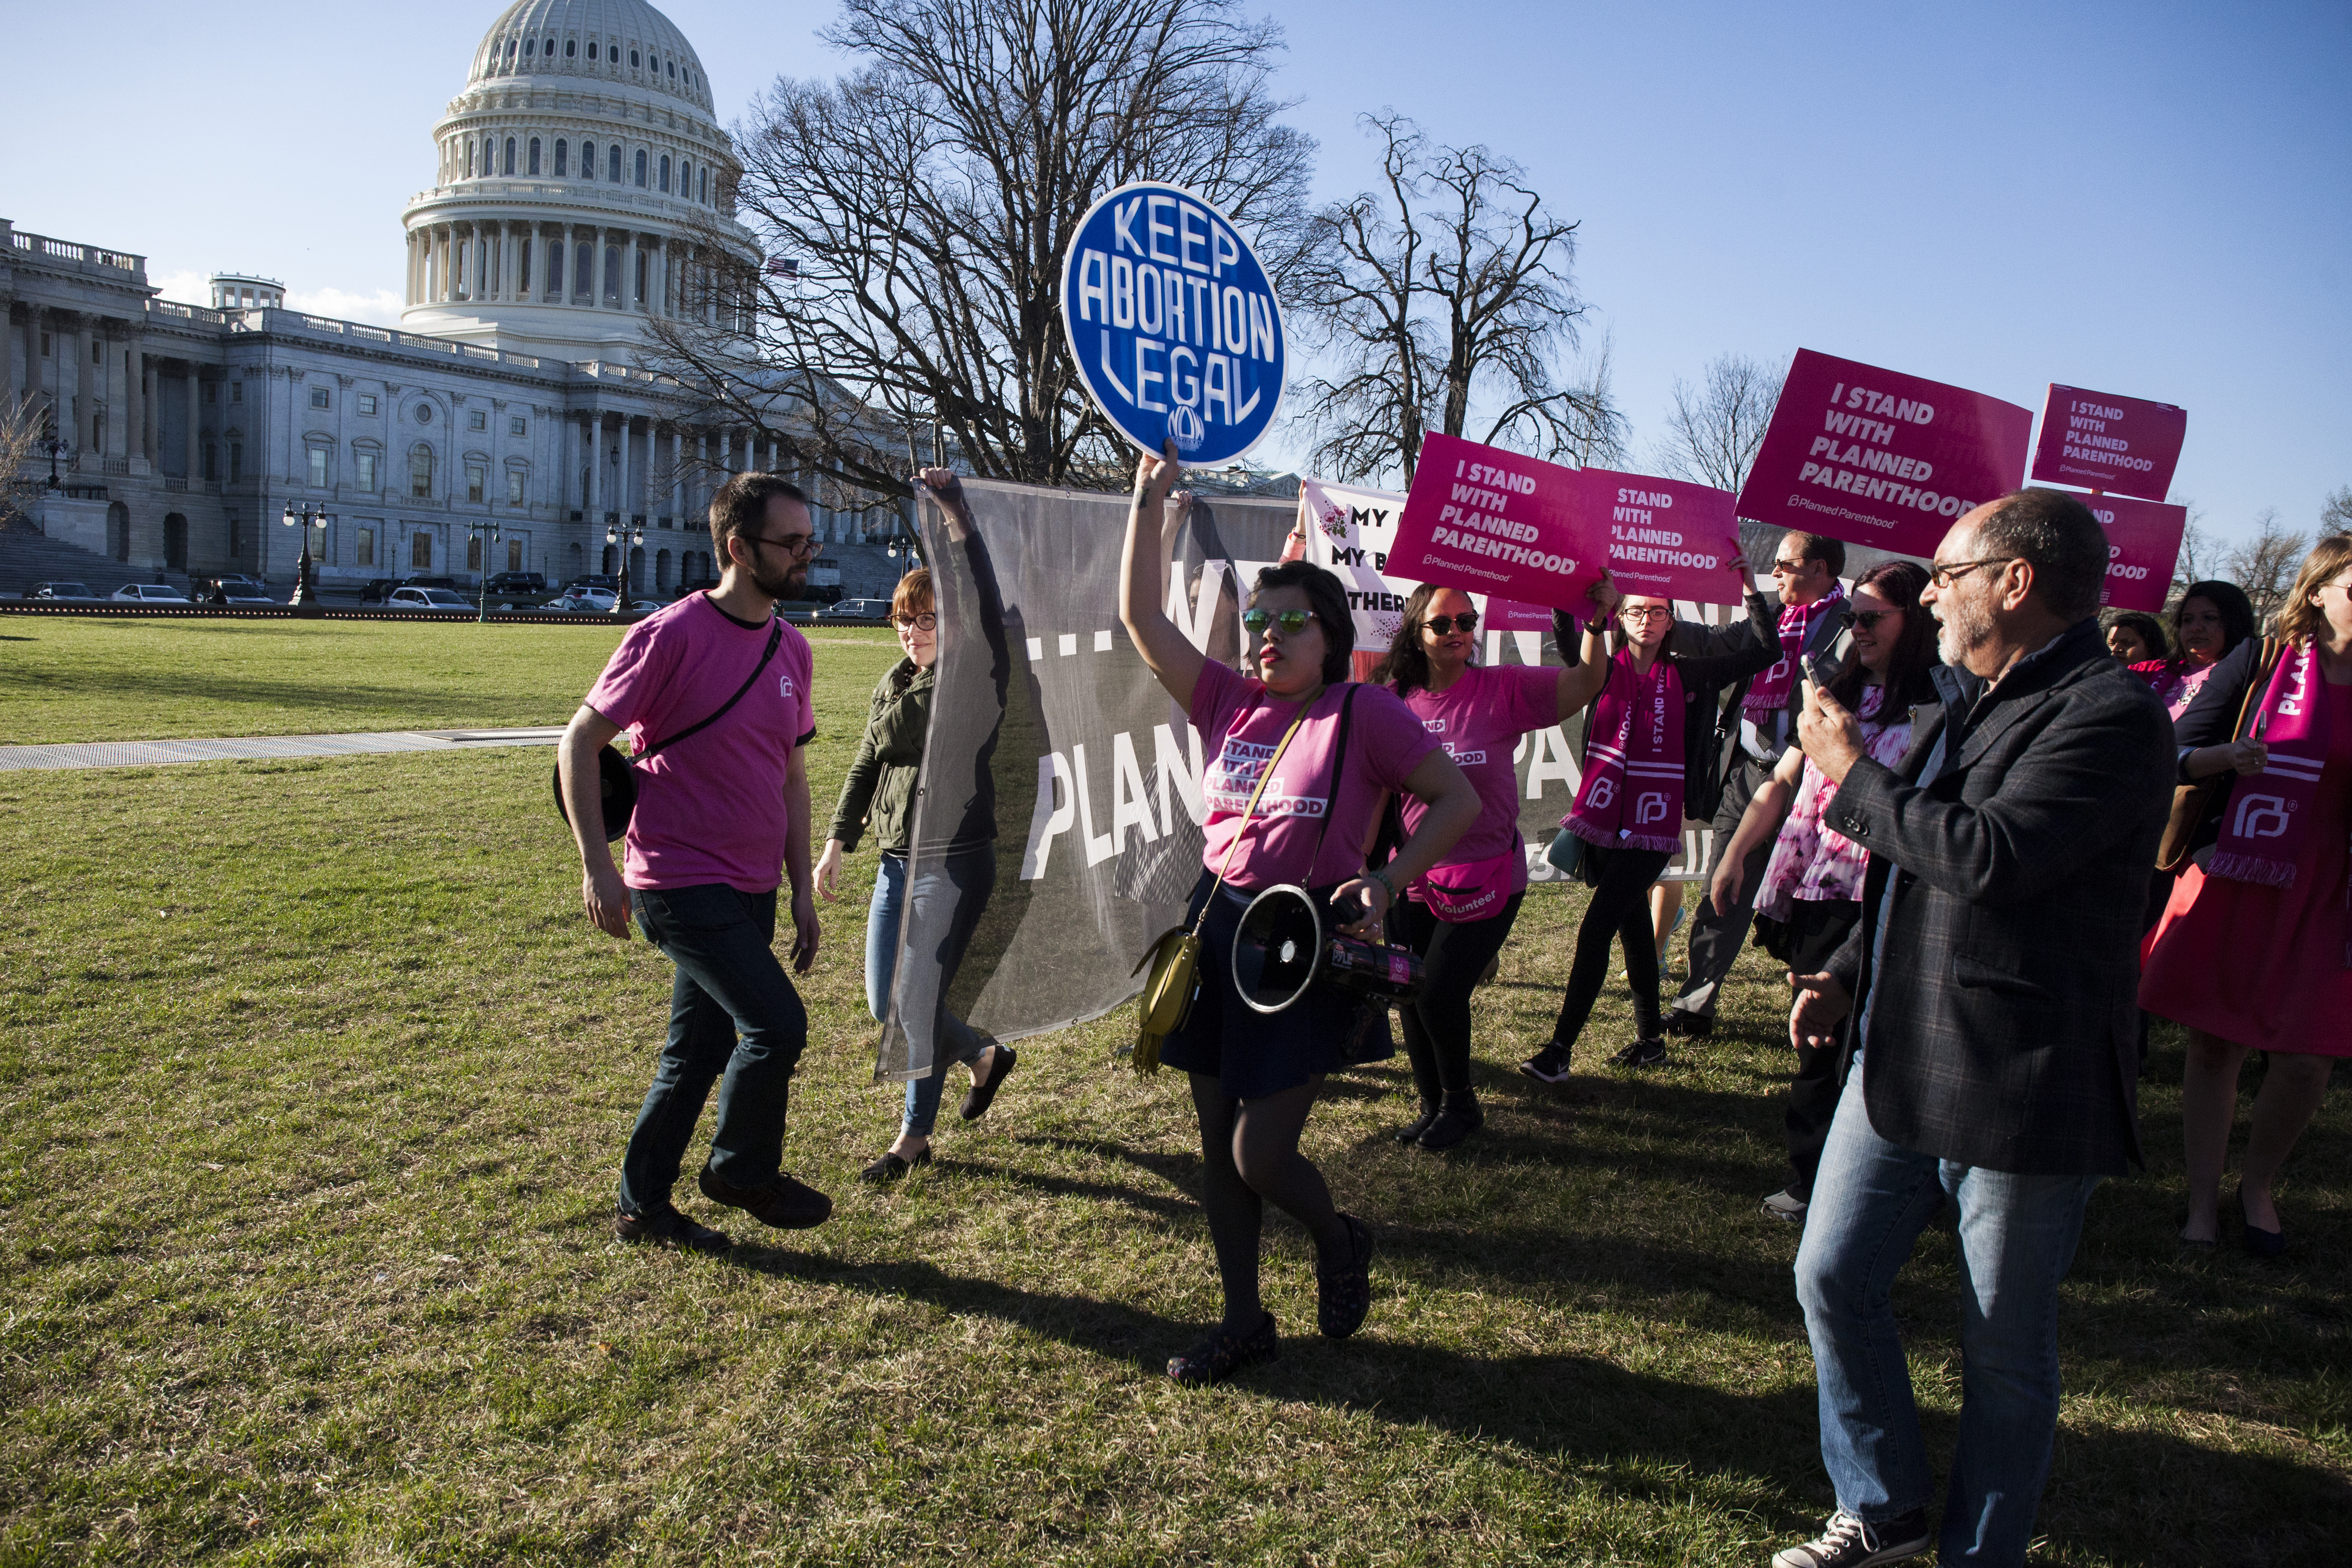 Demonstrators attempt to block a sign held by abortion opponents during a rally opposing attempts to defund Planned Parenthood March 29, 2017 on Capitol Hill in Washington, DC. U.S. (Zach Gibson--Getty Images)